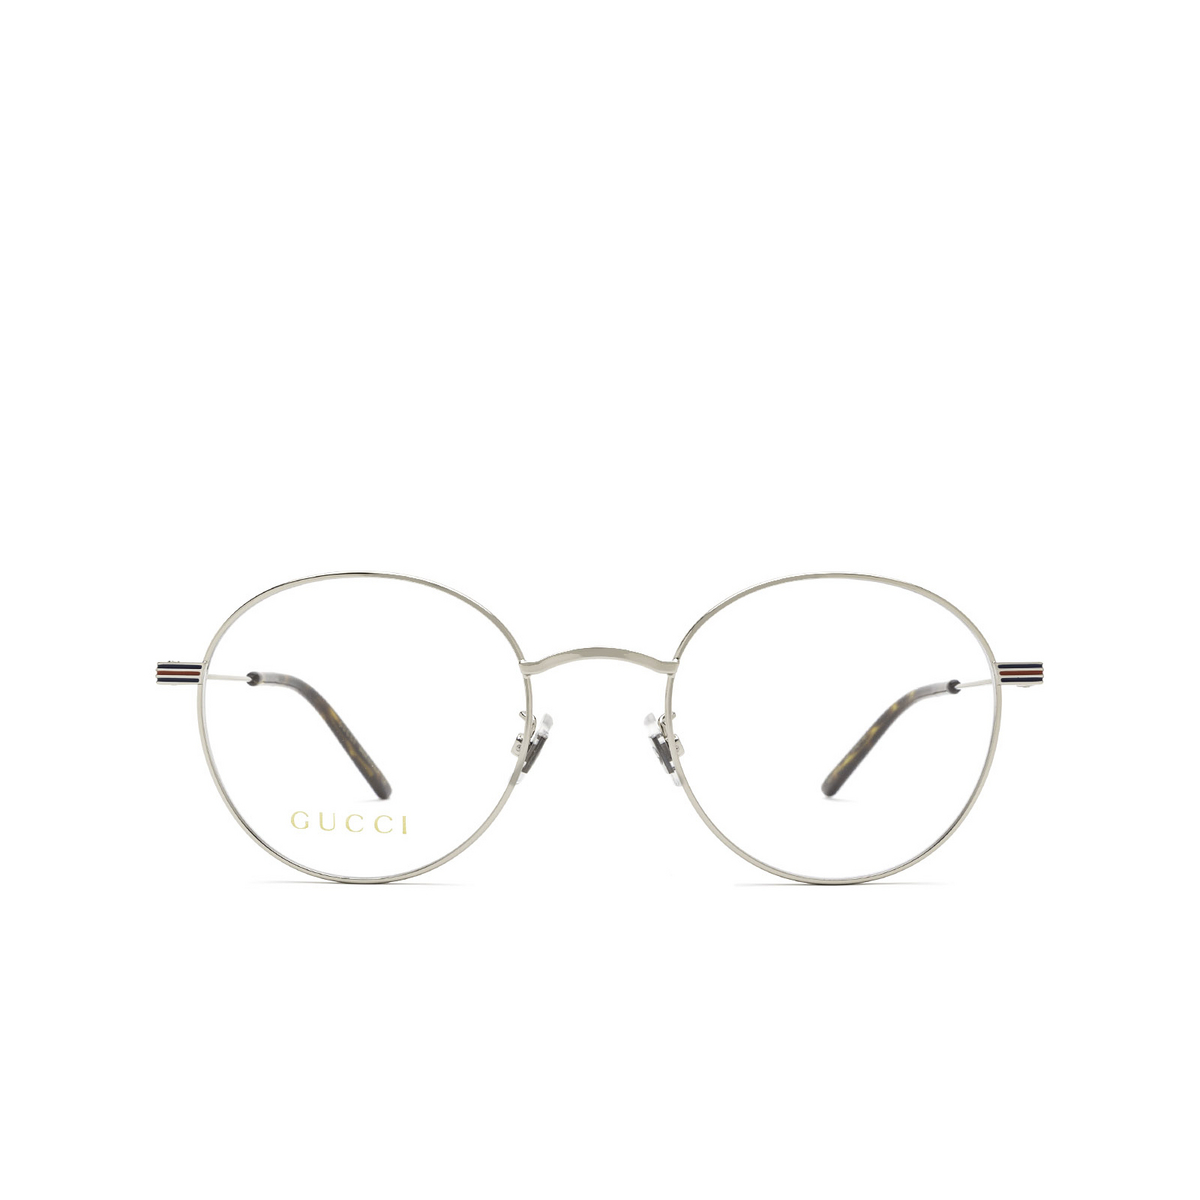 Gucci® Round Eyeglasses: GG1054OK color Silver 003 - front view.